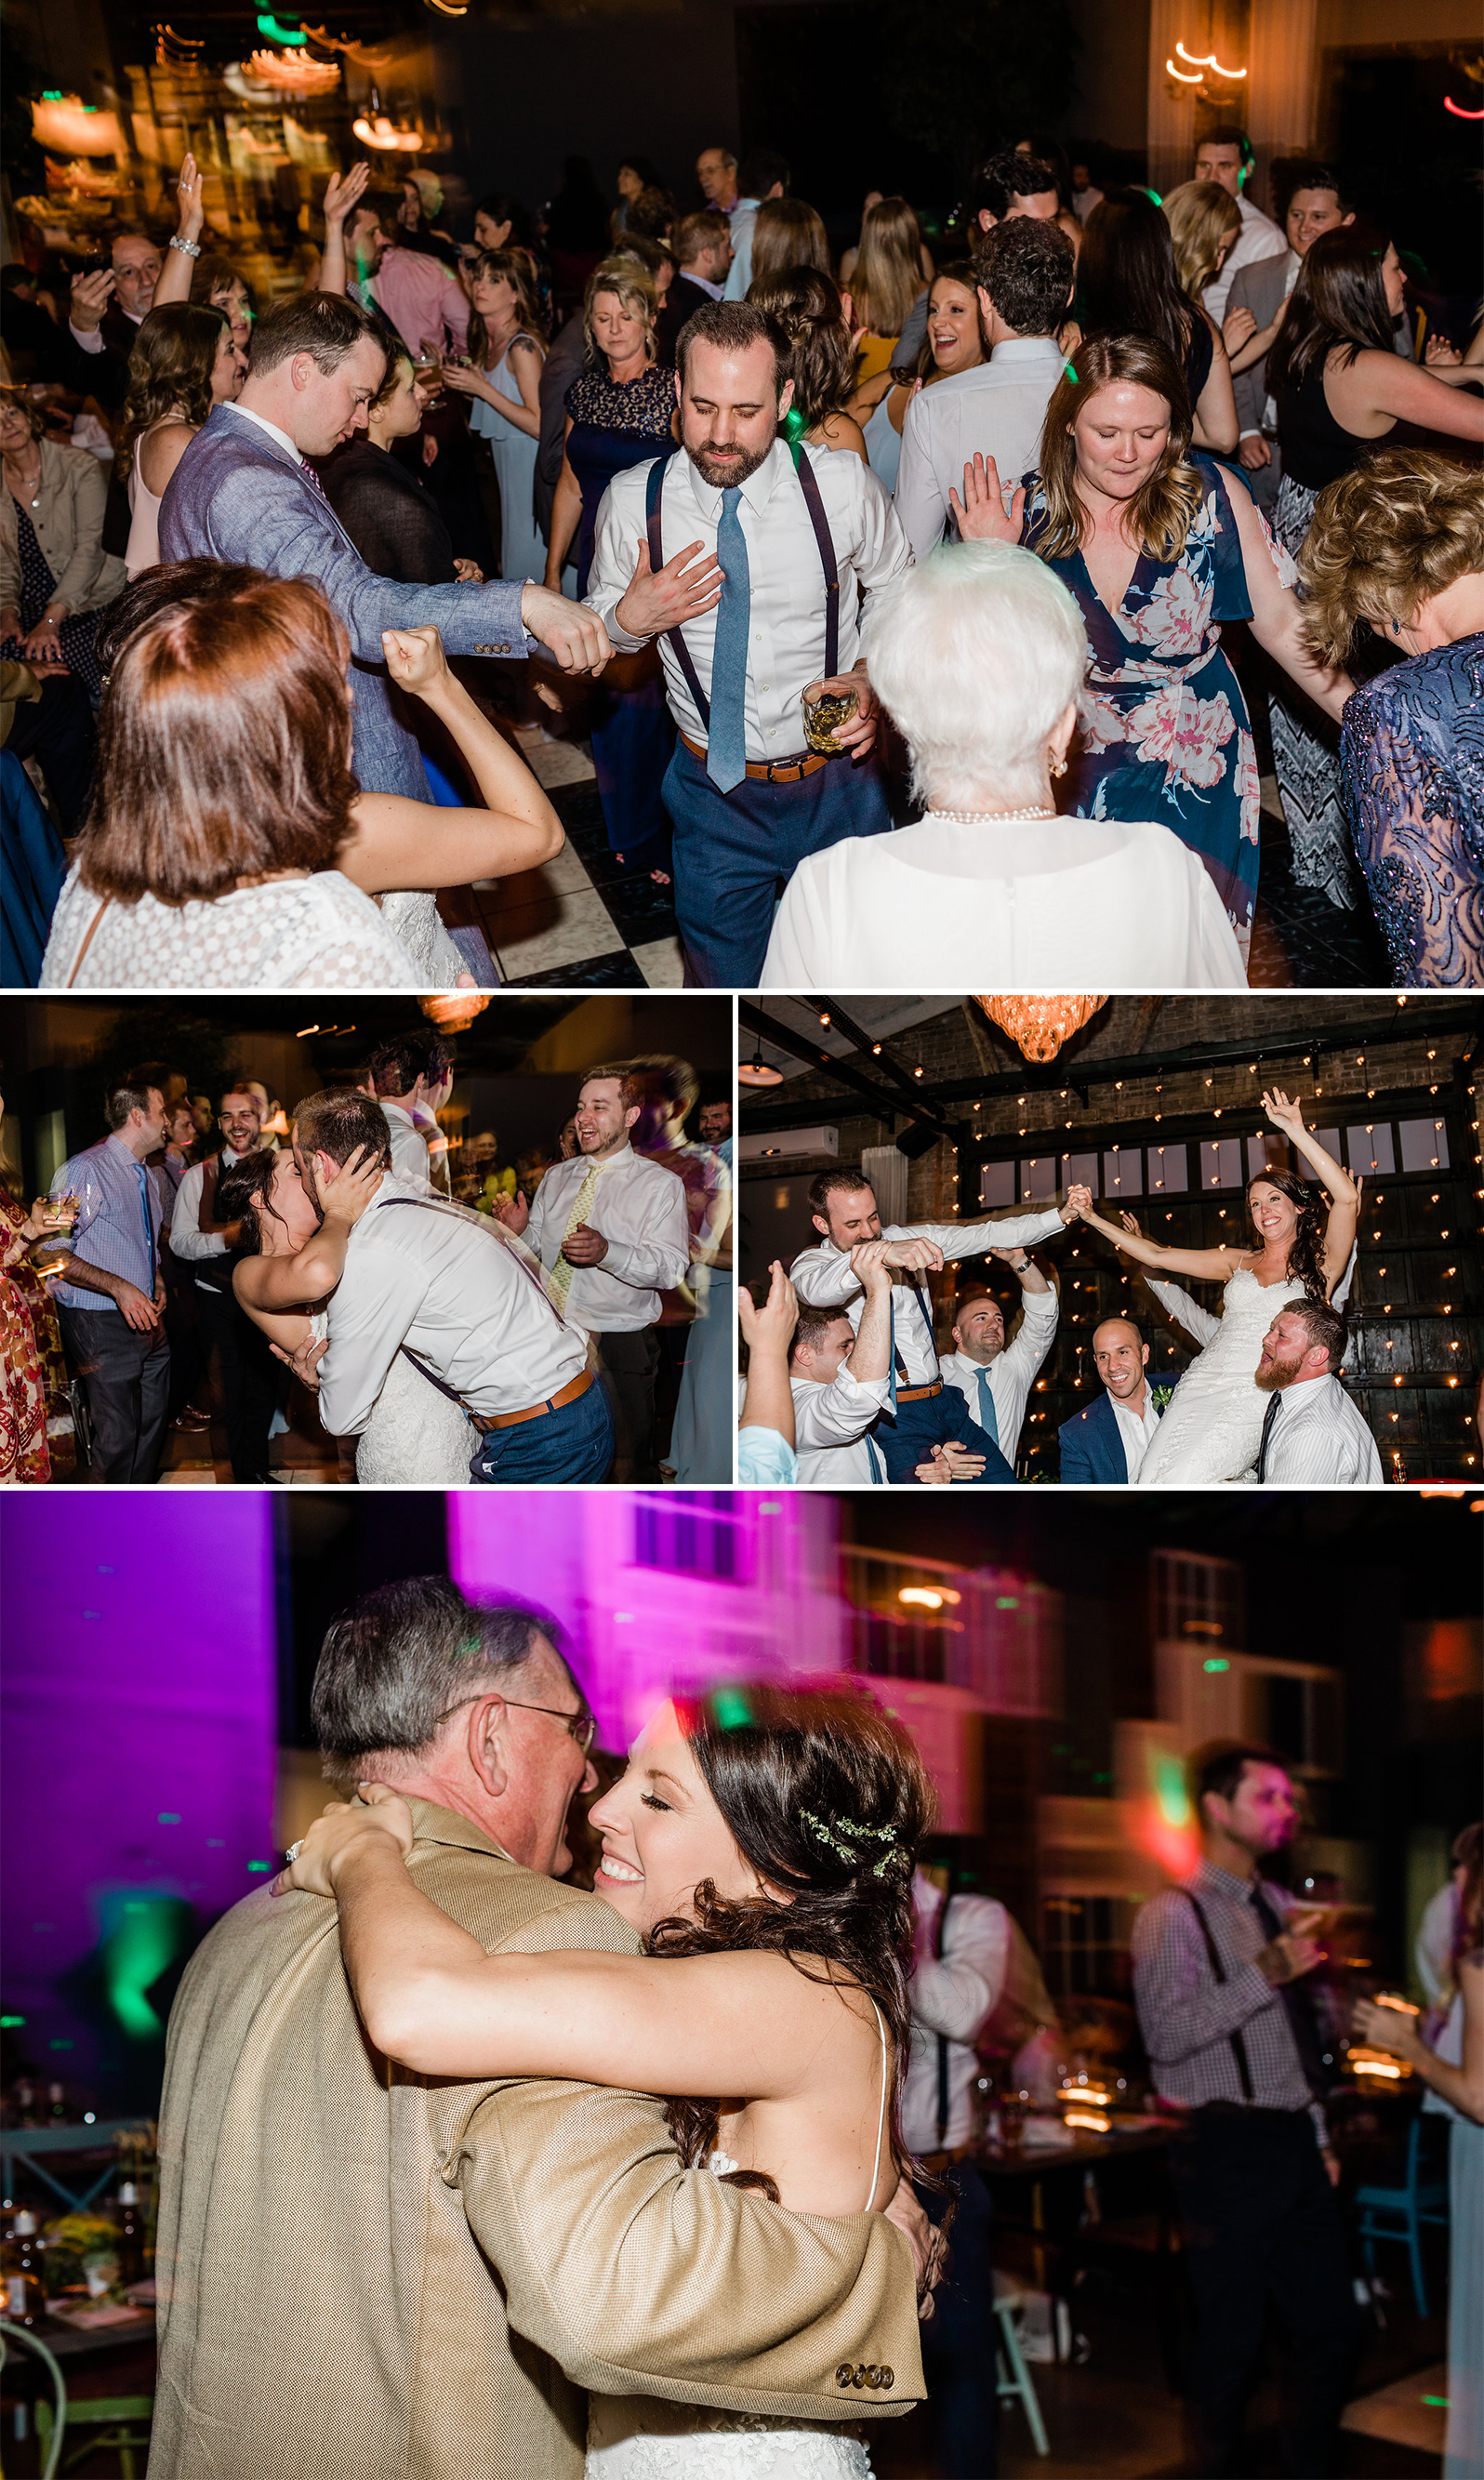 Michelle + Scott - Intimate Savannah Wedding at Soho South Cafe | Apt. B Photography